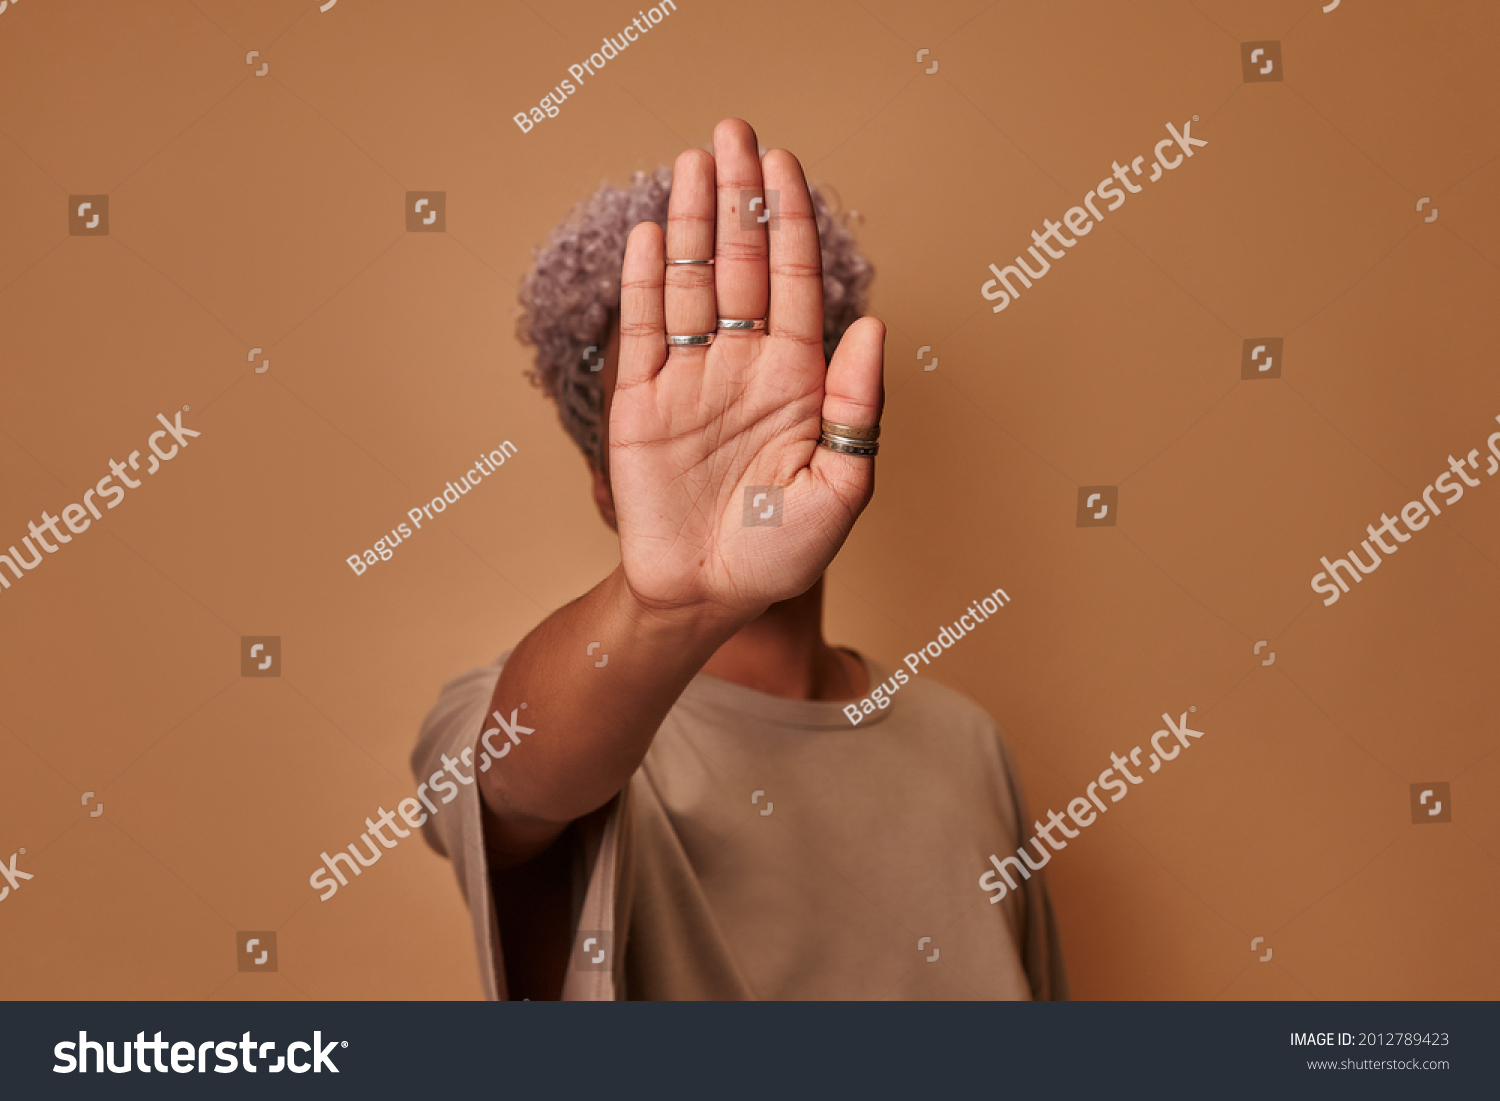 Serious African American woman covers herself with her palm, confidently shows prohibitory gesture stop and no signs shakes her head. Young ethnic woman against violence defends personal boundaries. #2012789423